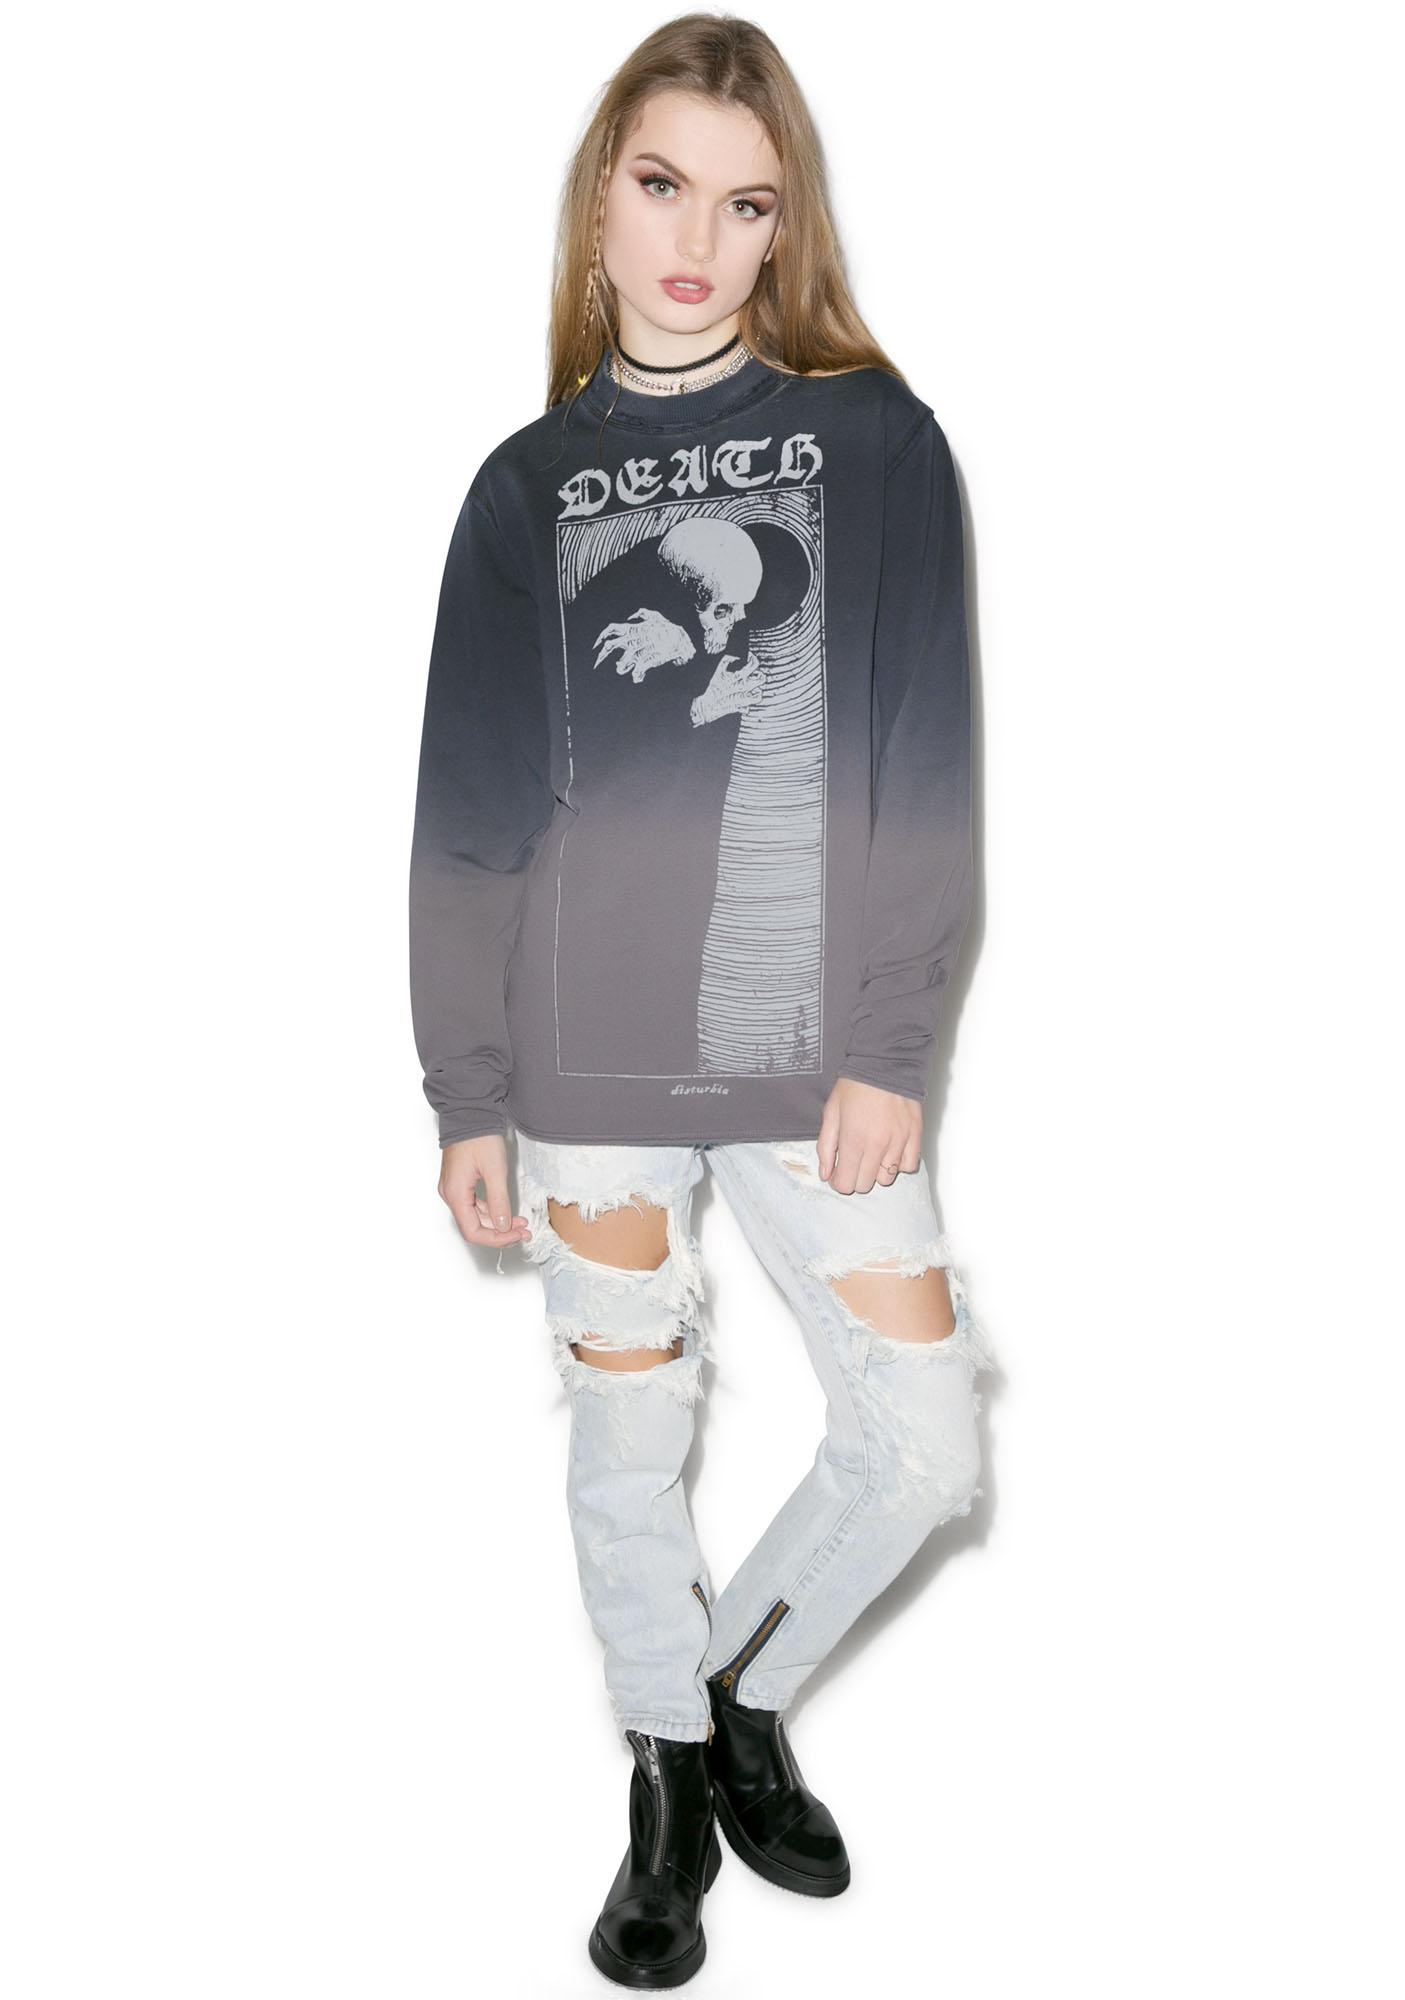 Disturbia Death Sweatshirt